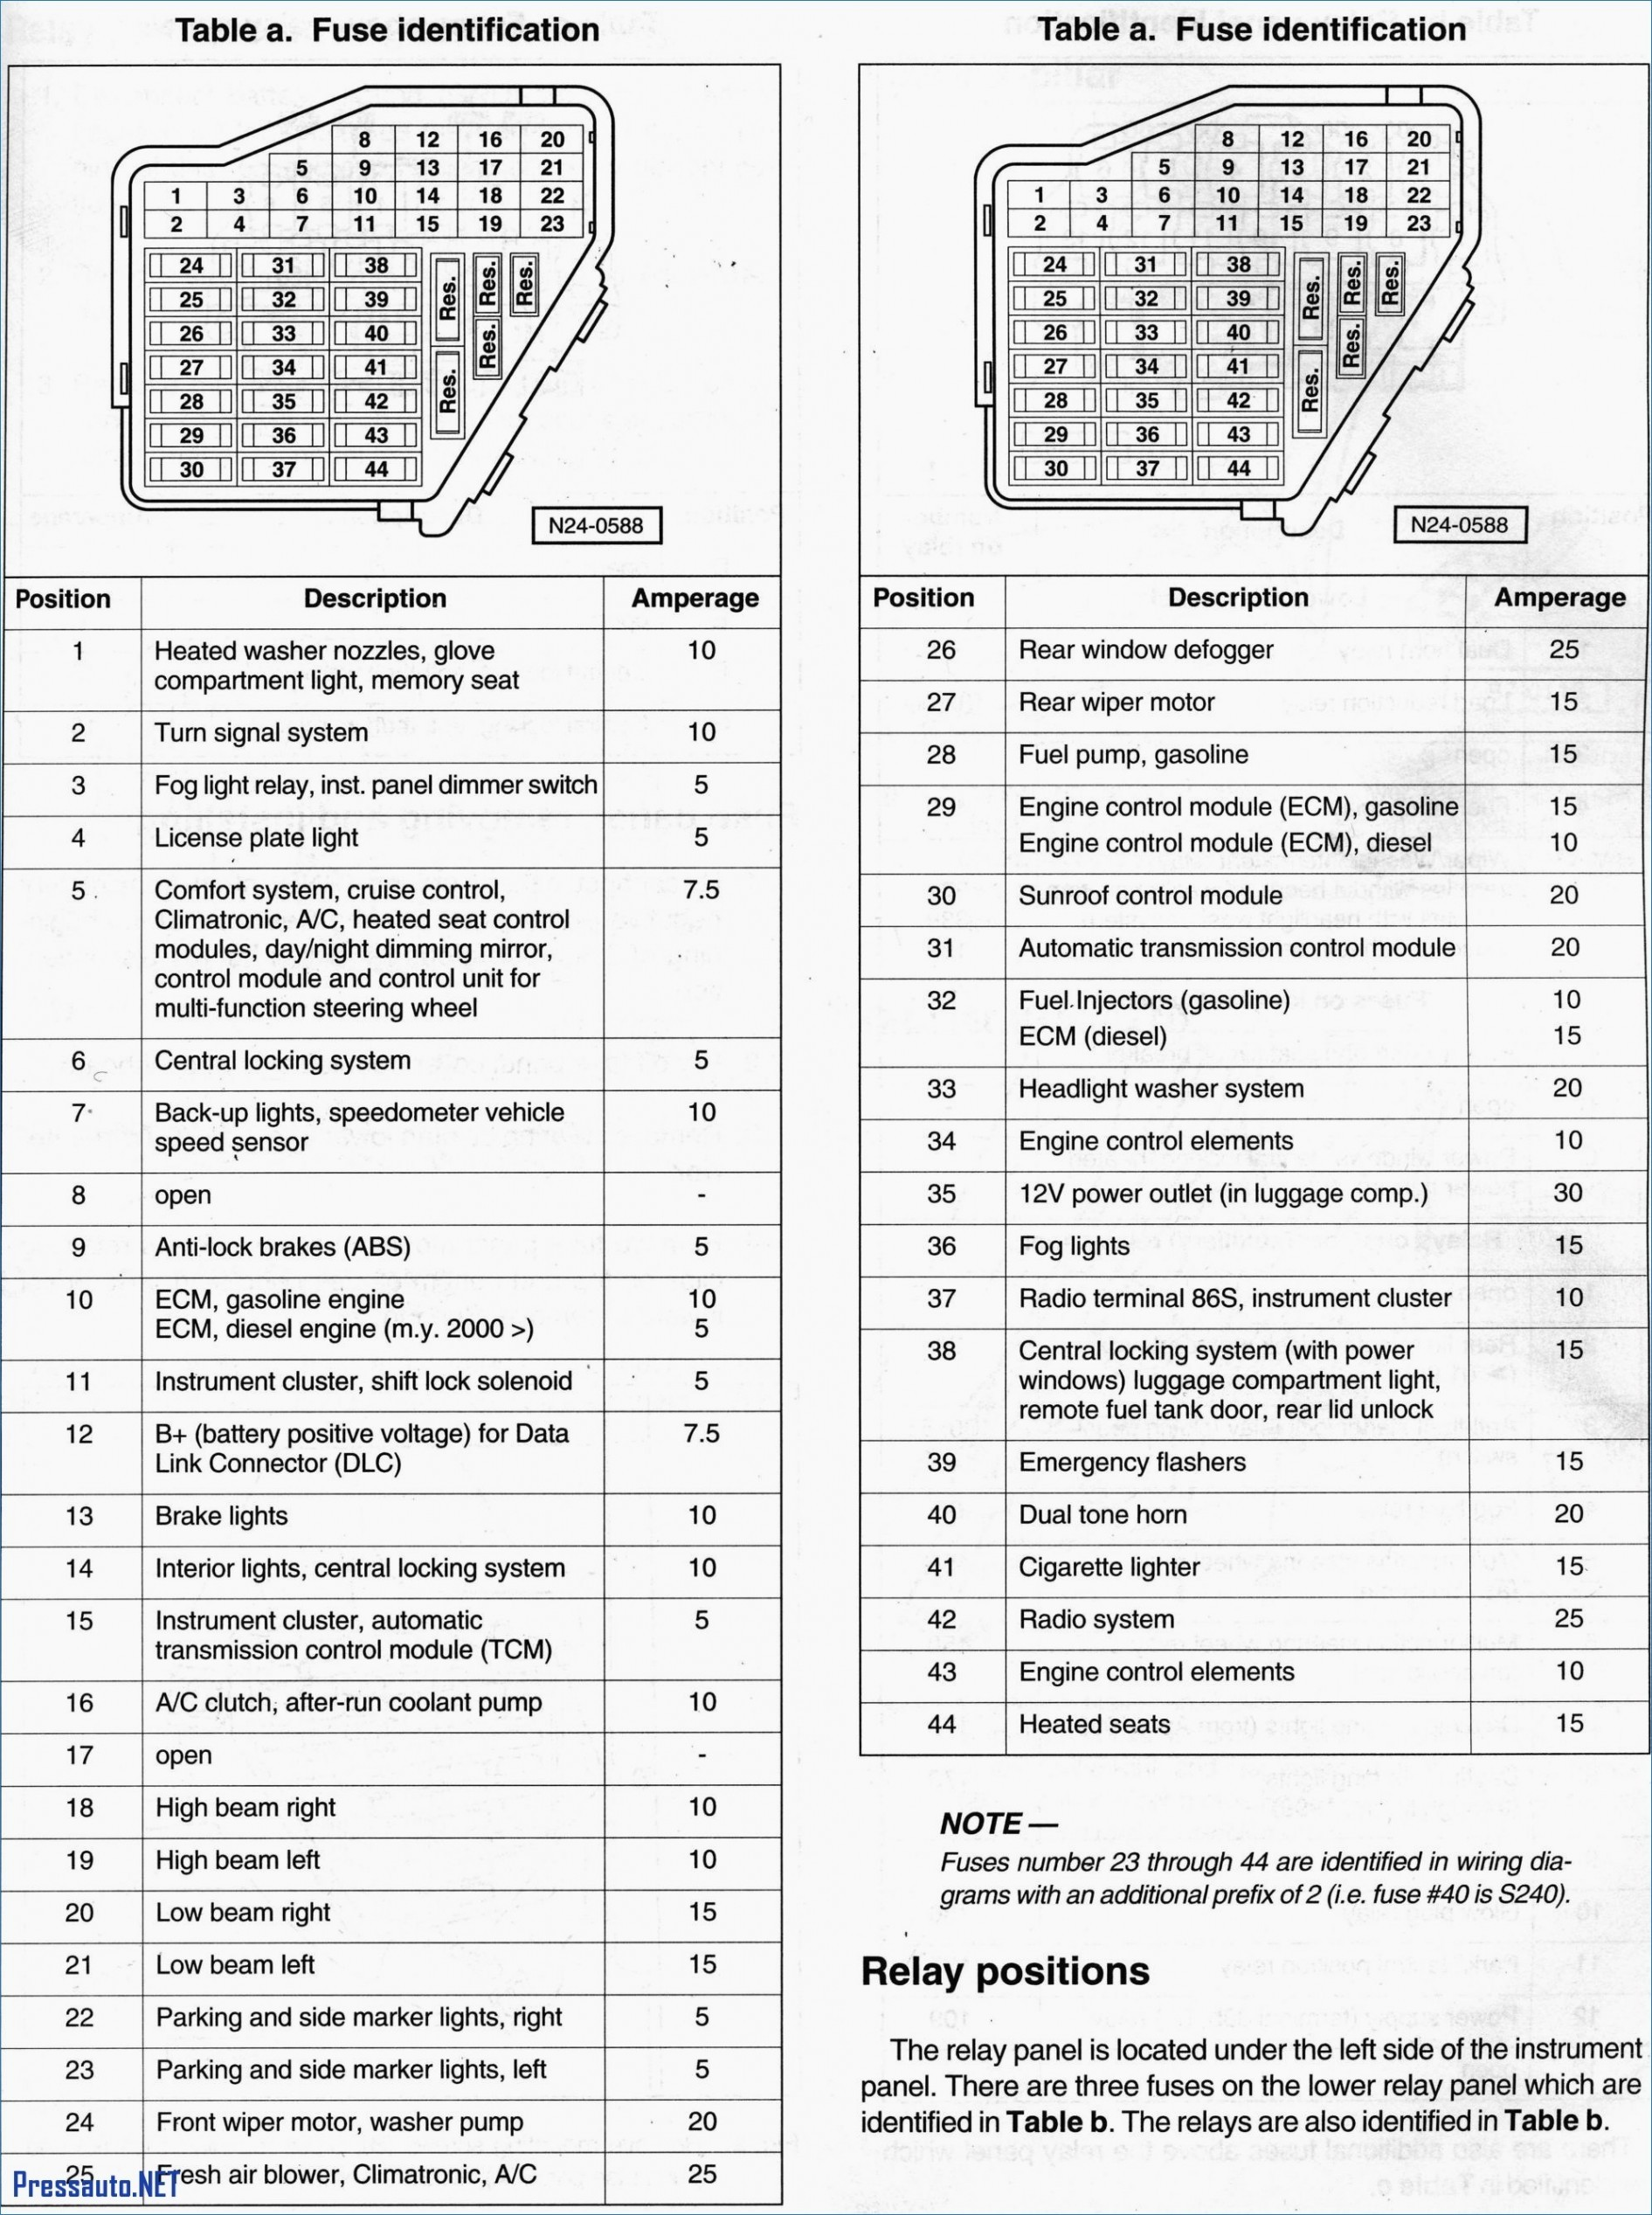 [DIAGRAM_5FD]  Audi A4 Fuse Box Location 2005 1992 Isuzu Rodeo Stereo Wiring Diagram -  kepahyang.sardaracomunitaospitale.it | 2008 Audi A4 Fuse Box |  | Wiring Diagram and Schematics